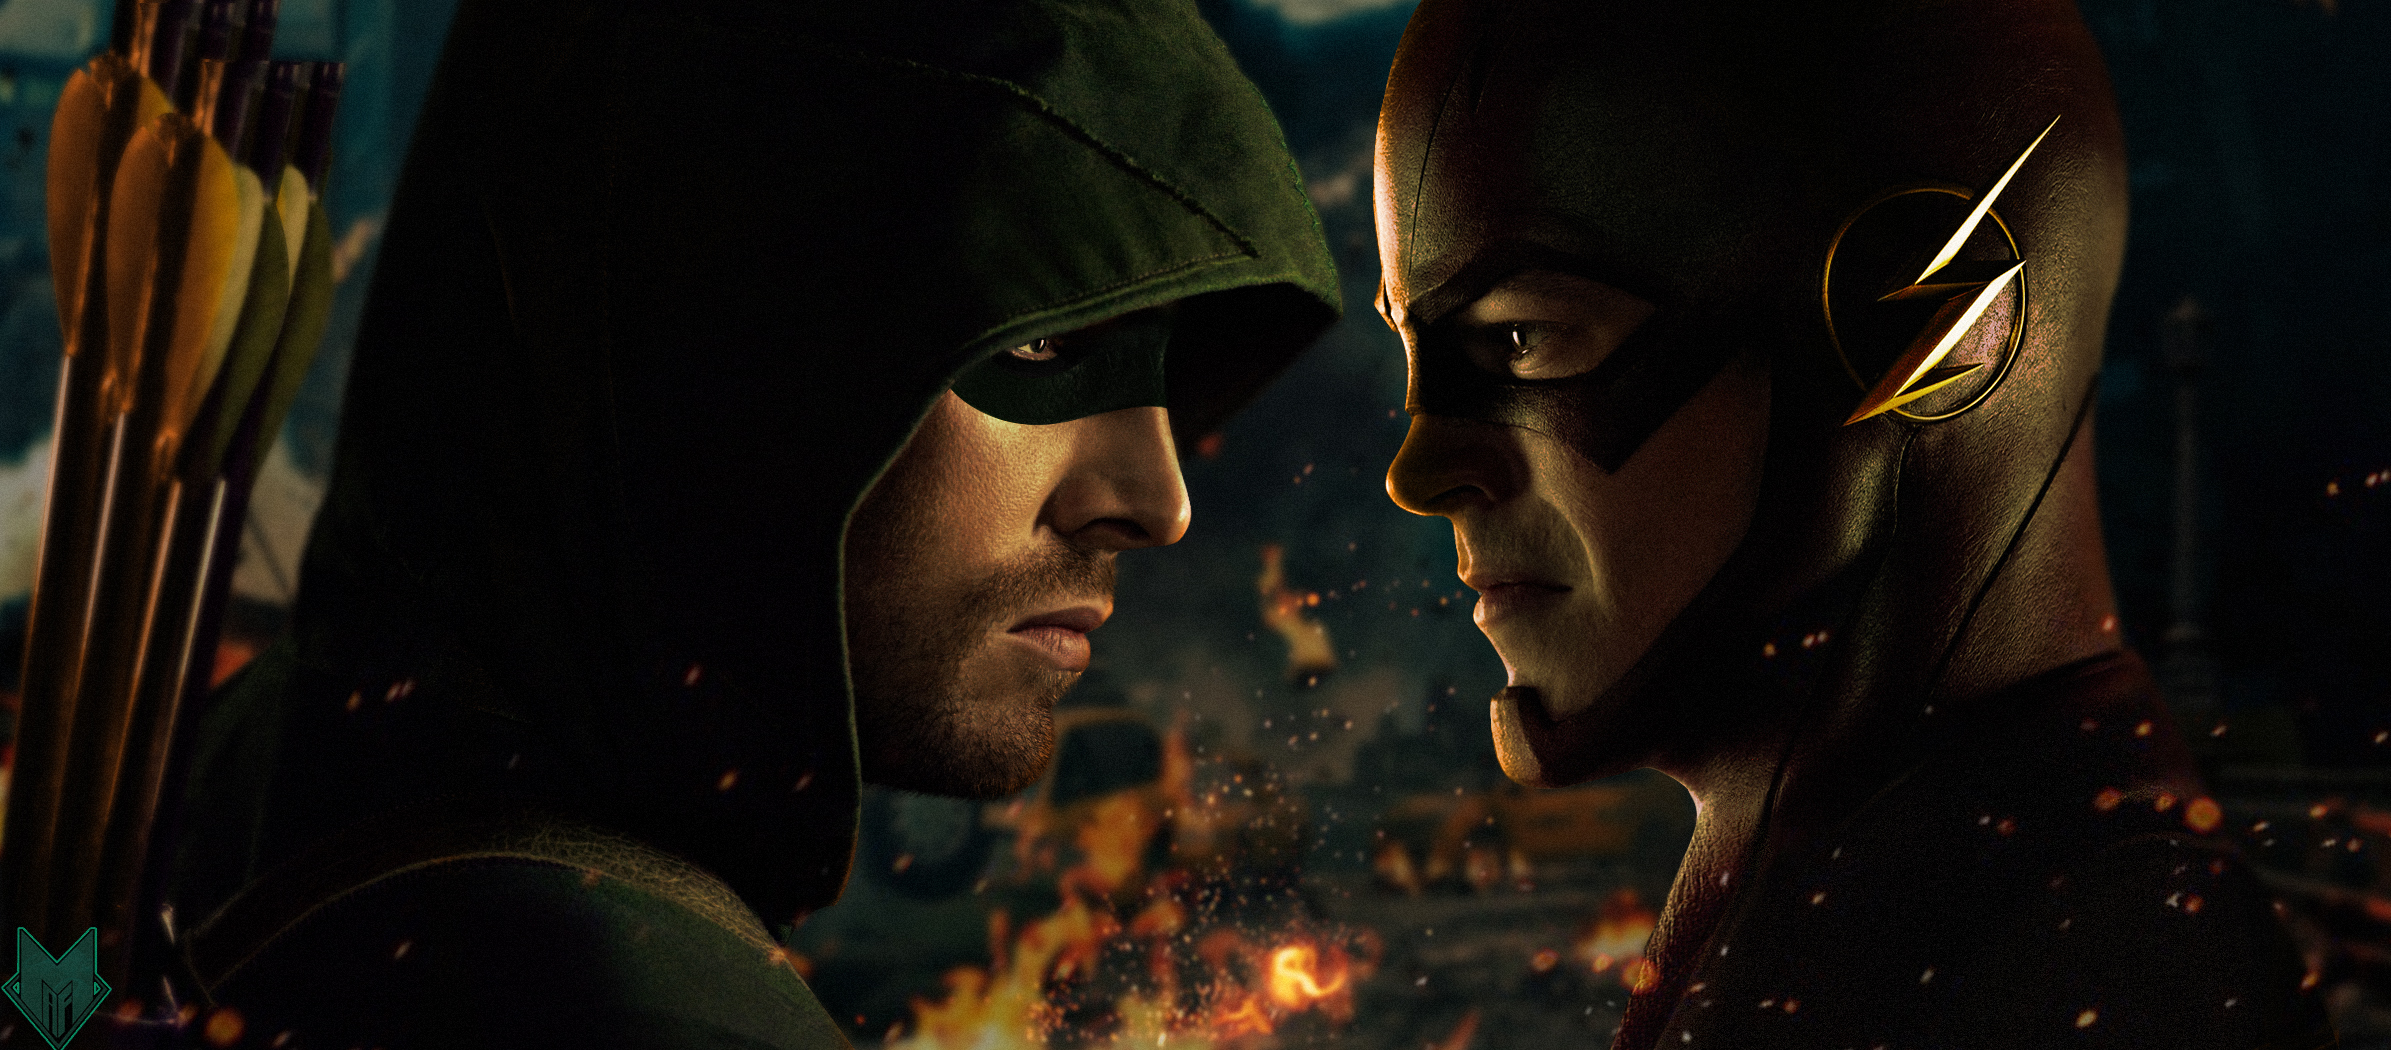 Flash vs Arrow HD Desktop Wallpapers digitalhintnet 2391x1050